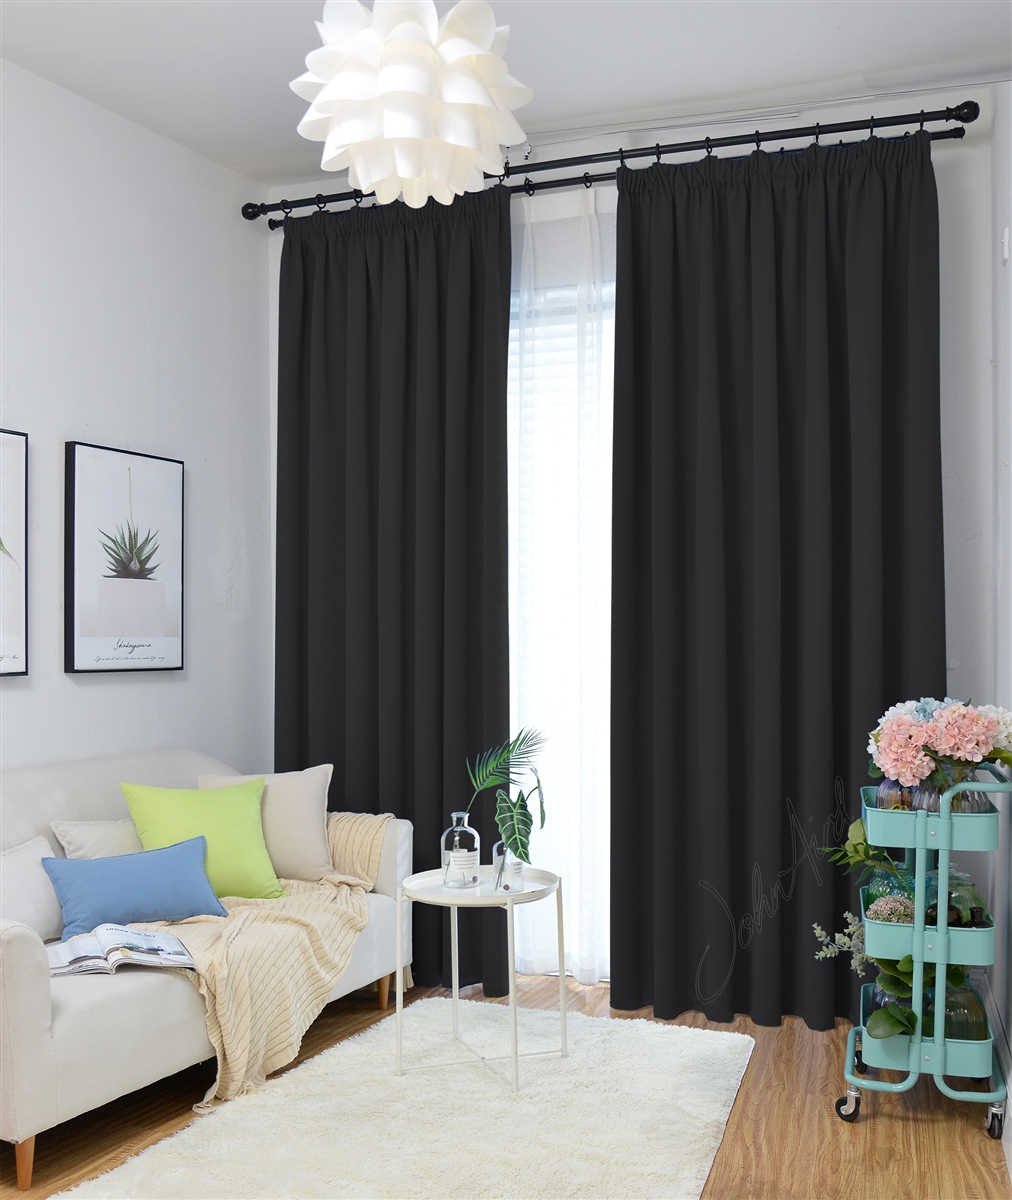 Curtain Blinds Dubai